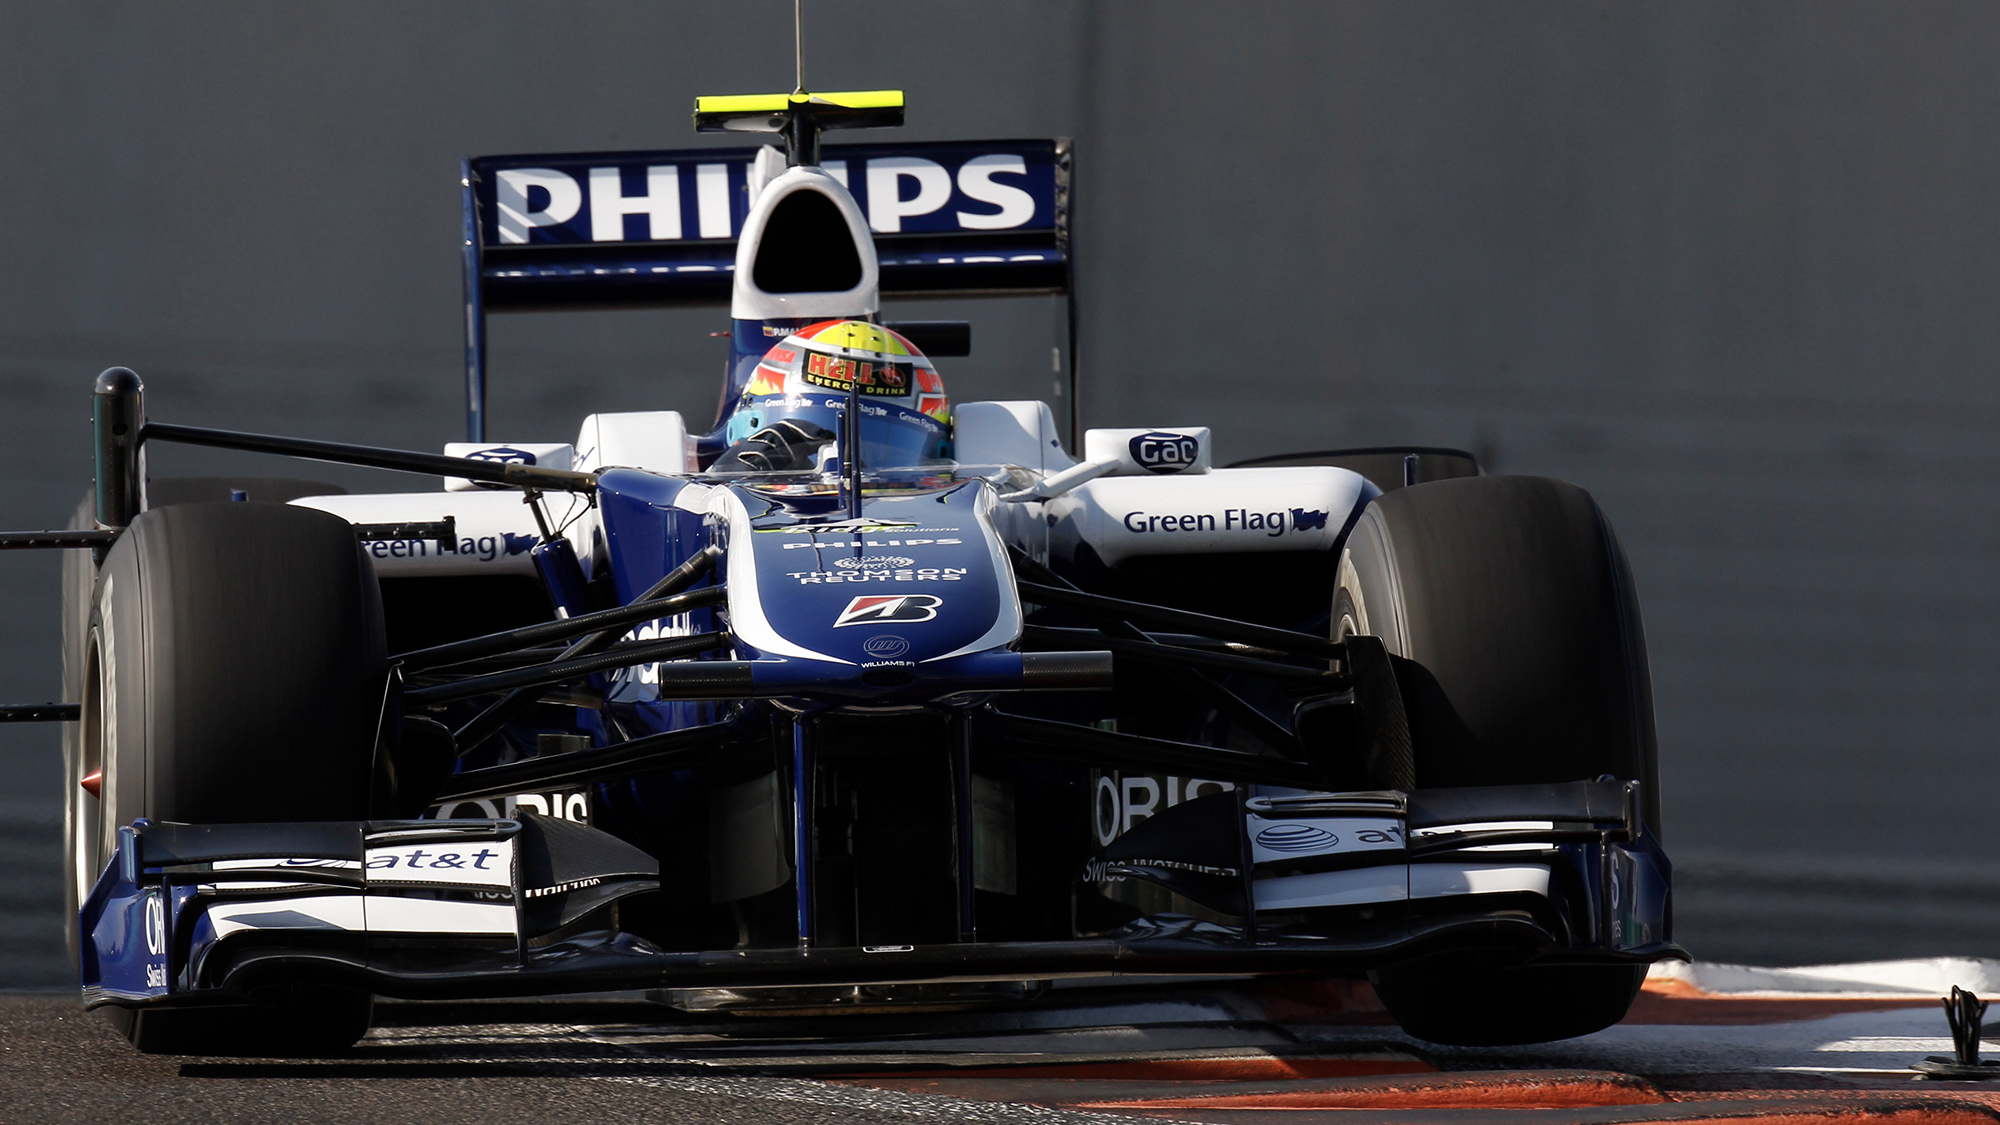 Pastor Maldonado in a Williams during the 2010 Abu Dhabi rookie test